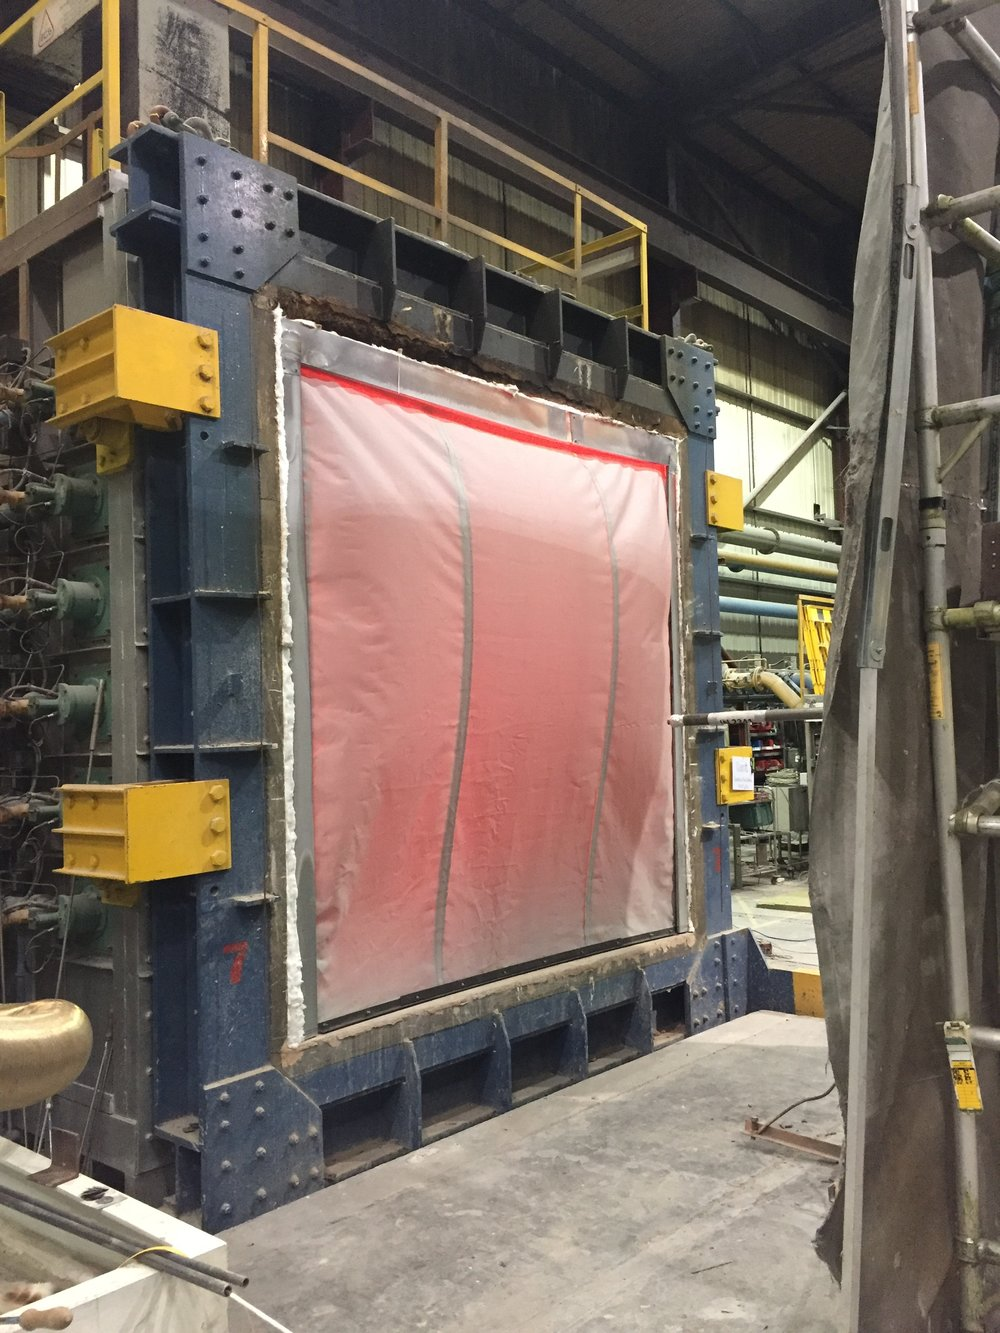 Kent Automatic Fire Curtains (KAFC) being tested to BS EN 1634-1